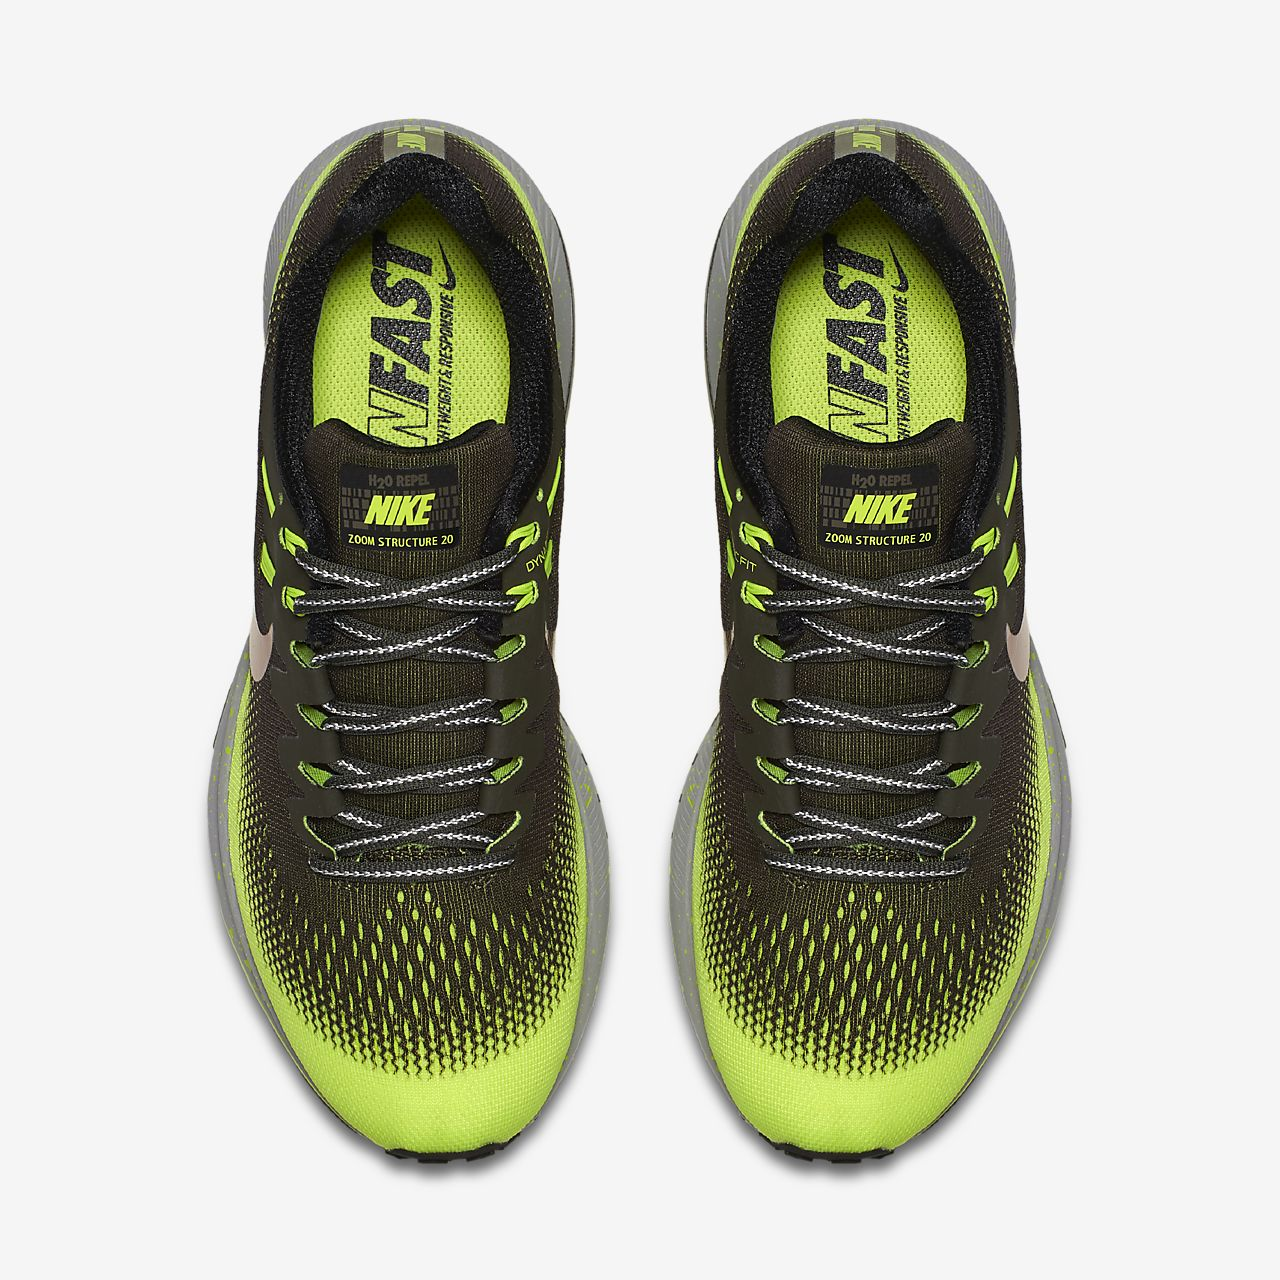 154bbf5b237f6 ... cheapest nike air zoom structure 20 shield mens running shoe 5e439 b4a9e